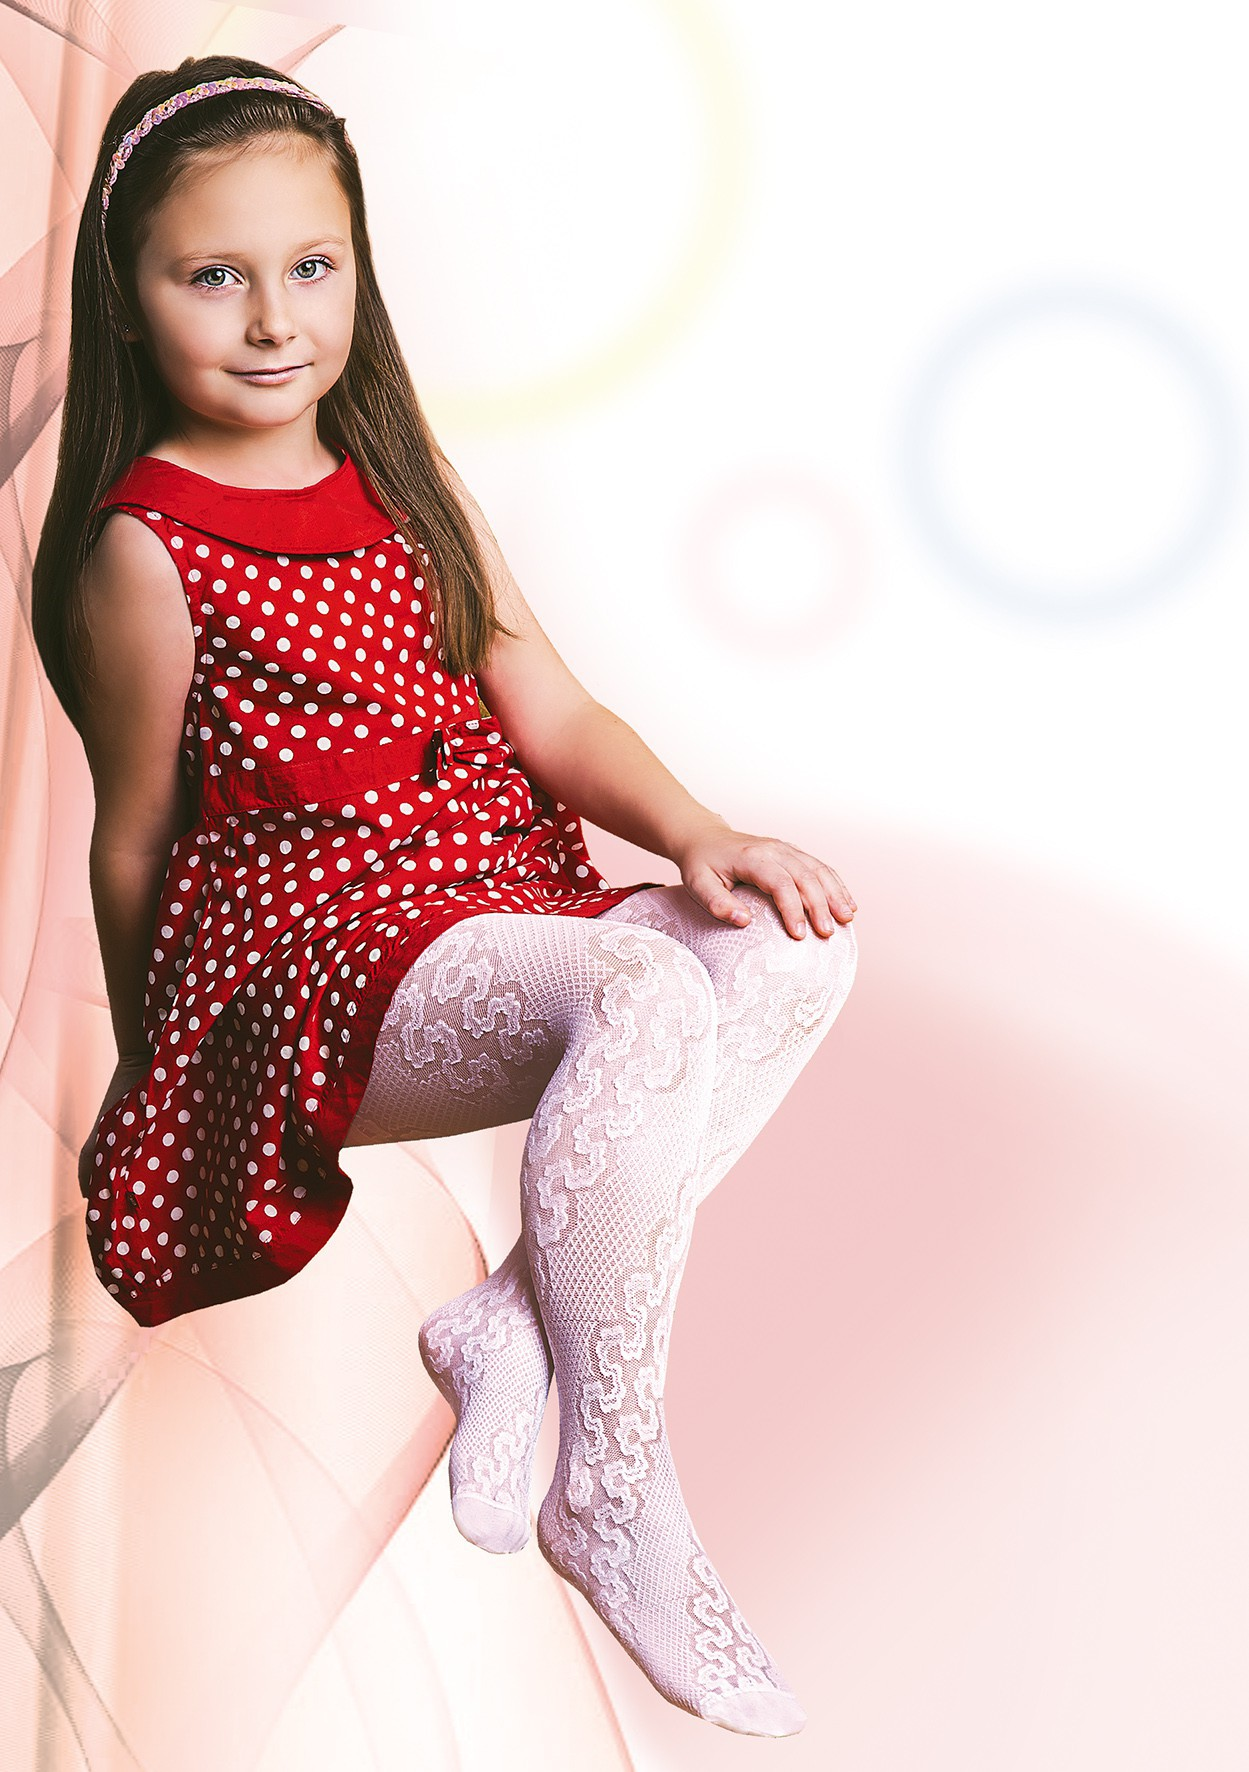 Aleksandra Girls White Tights 20 Denier Floral Lace Pattern Age 5-12 Jagoda